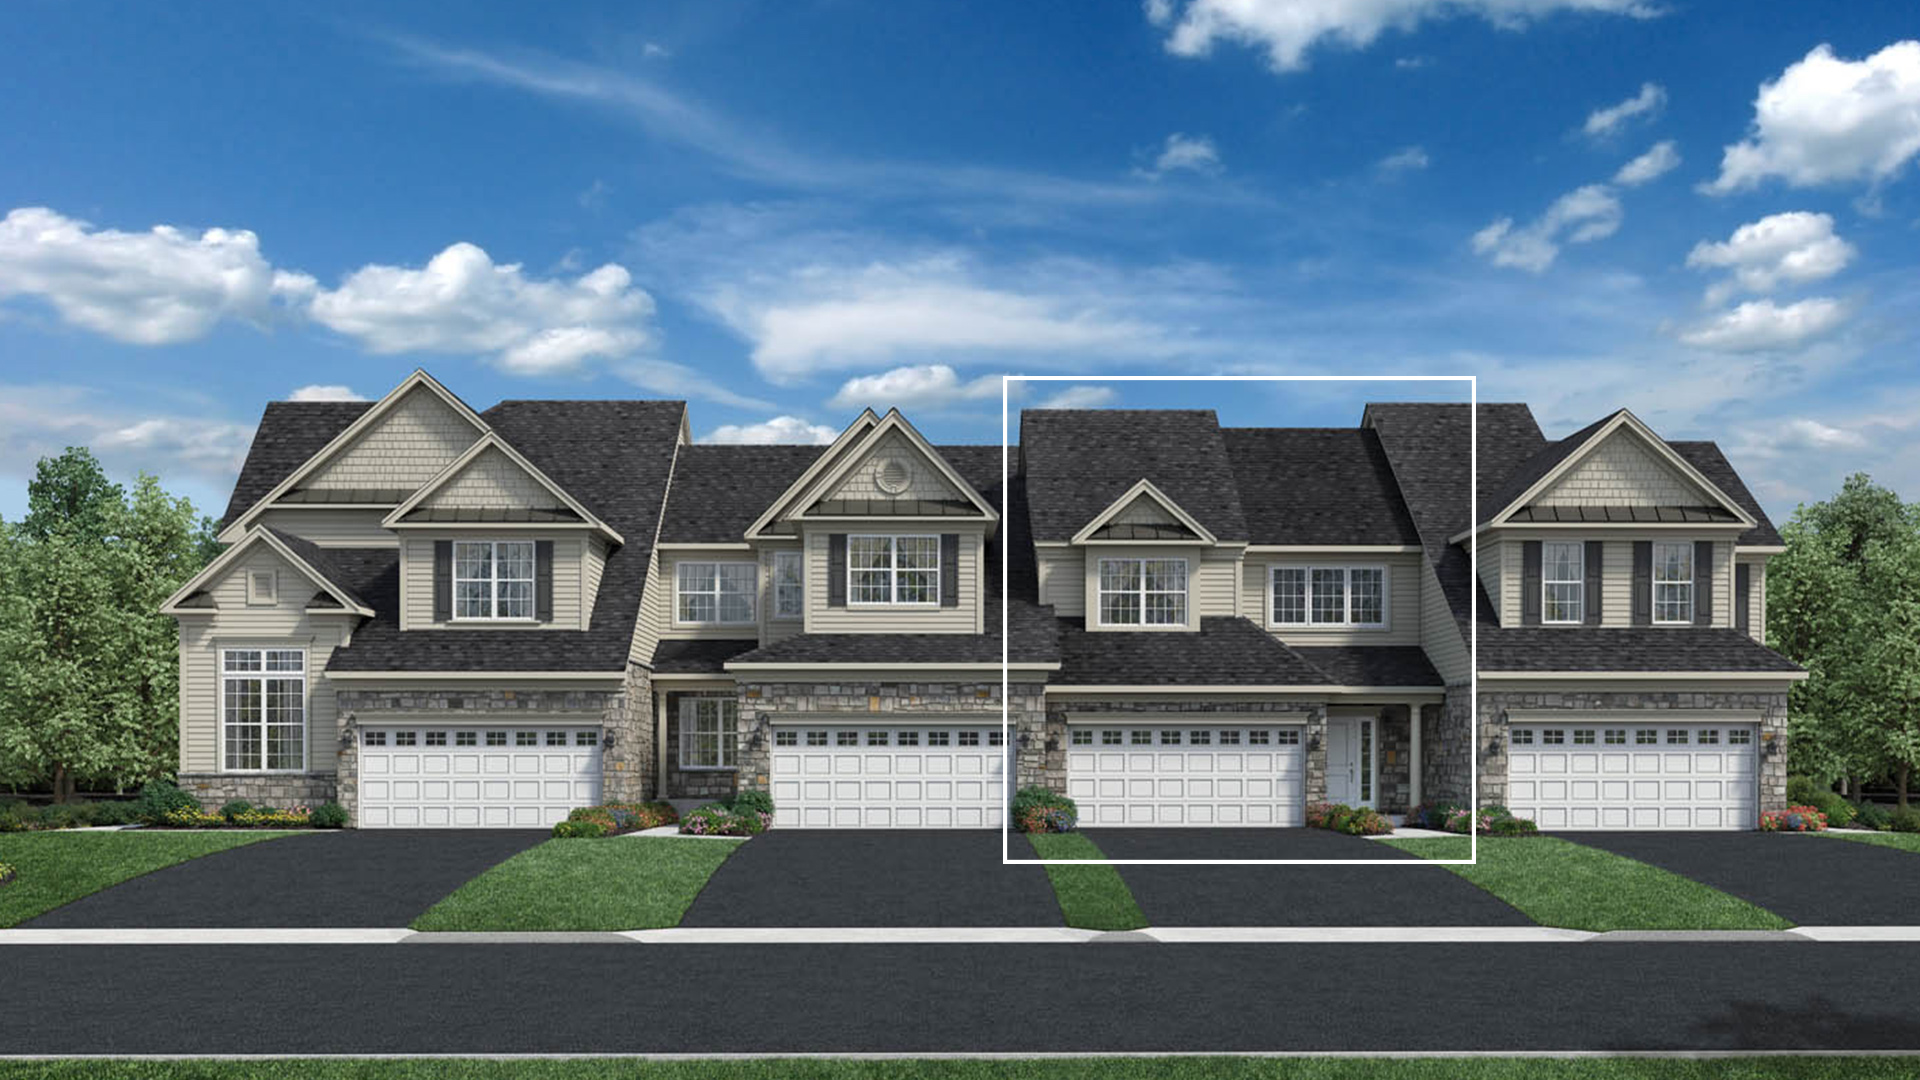 Ridgeview of Novi | The Brandeis Home Design